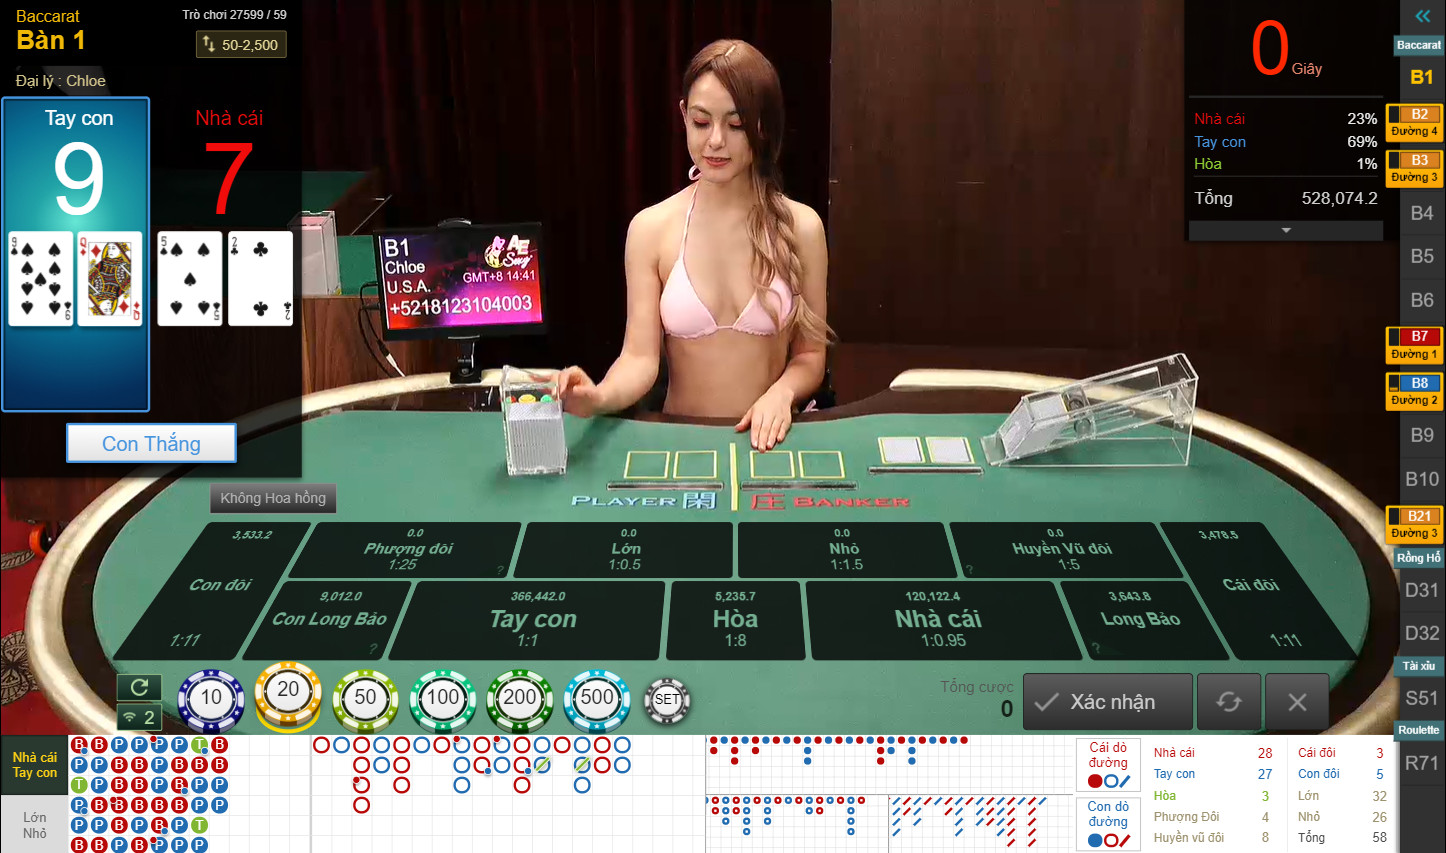 Giao diện trong game Sexy Baccarat online tại 7ball